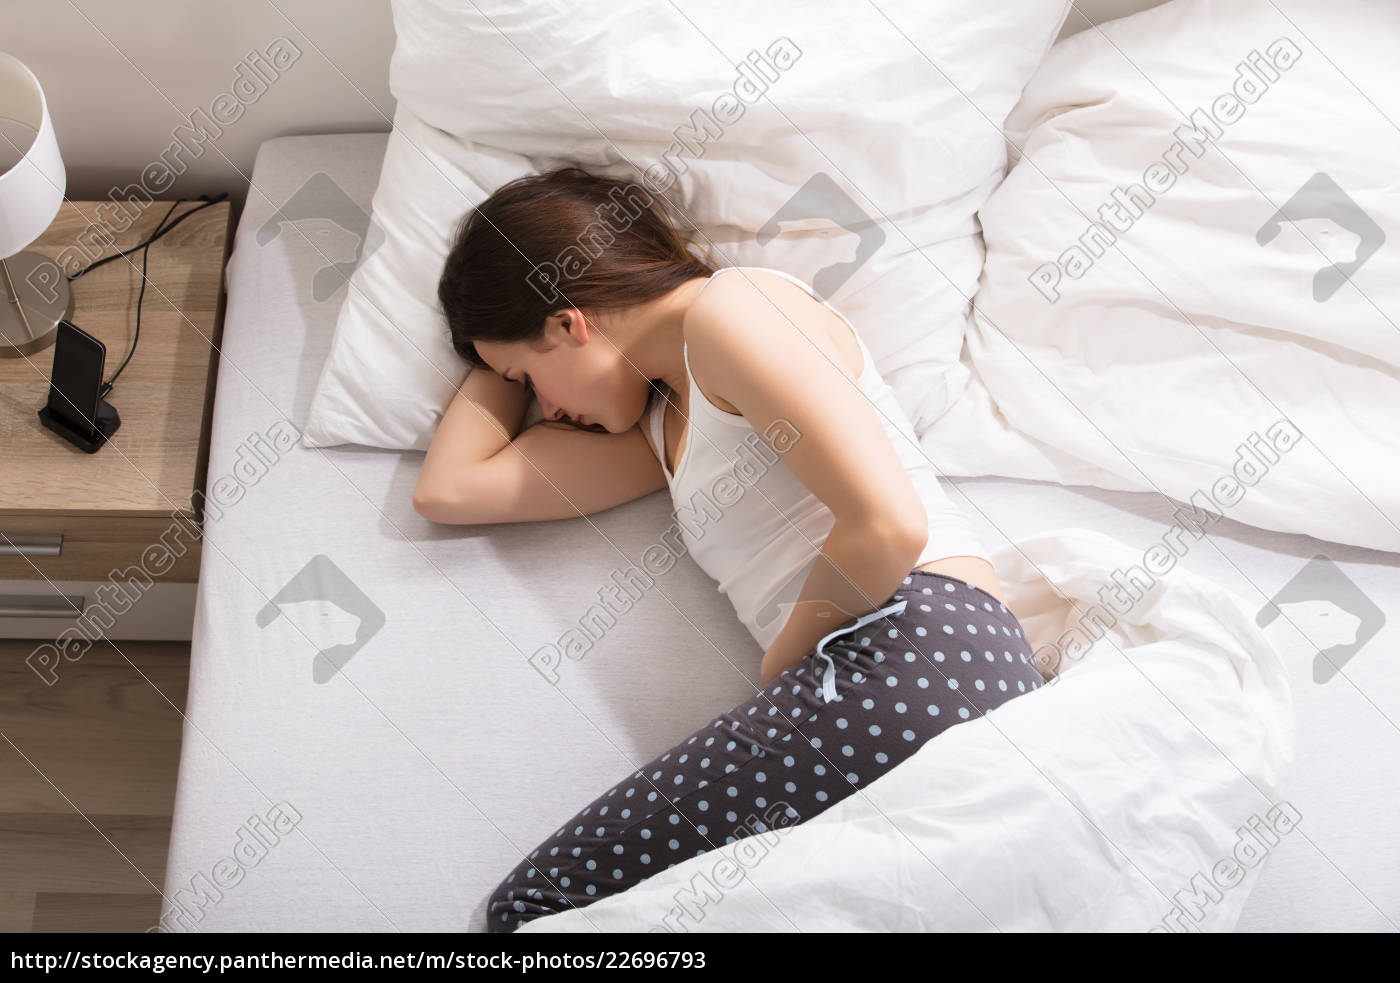 woman, with, stomach, pain - 22696793